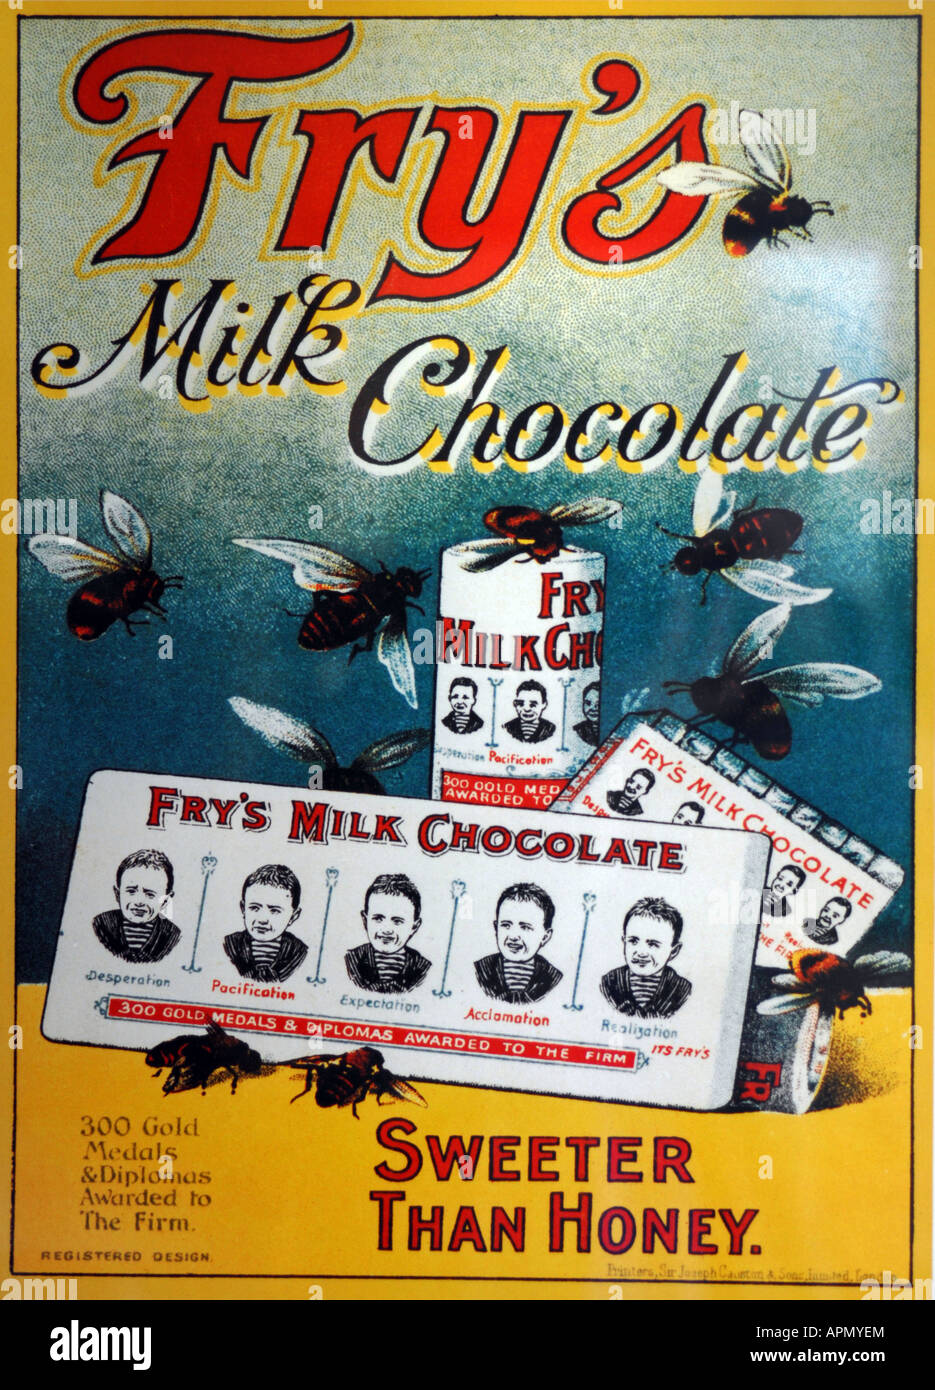 Old fashioned Fry's Milk Chocolate advert poster - Stock Image